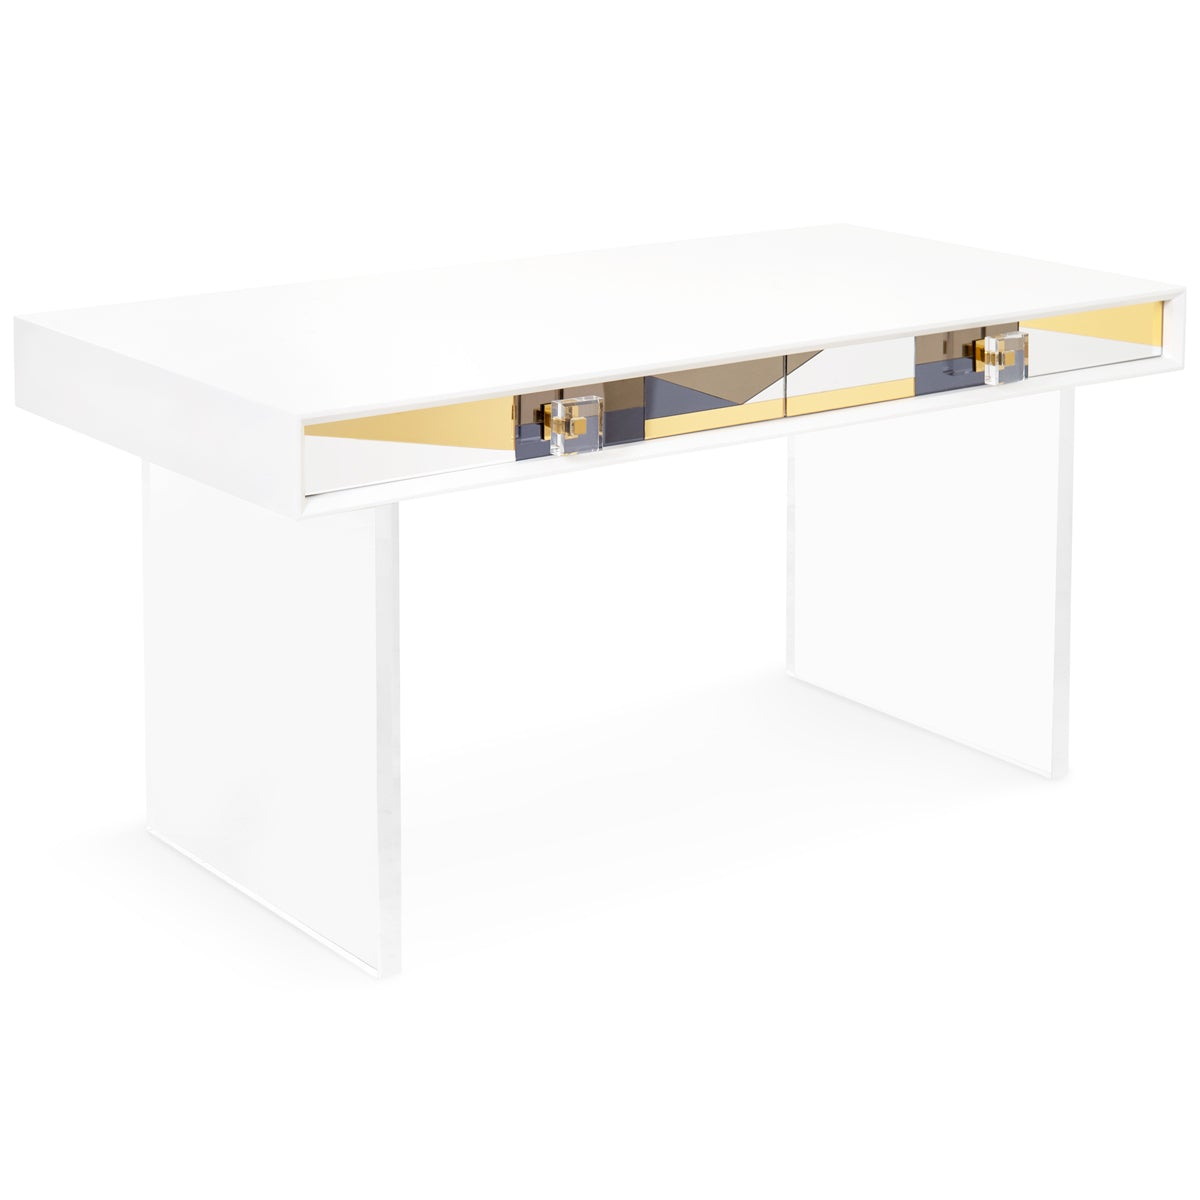 Studio 54 Mirrored Desk - ModShop1.com